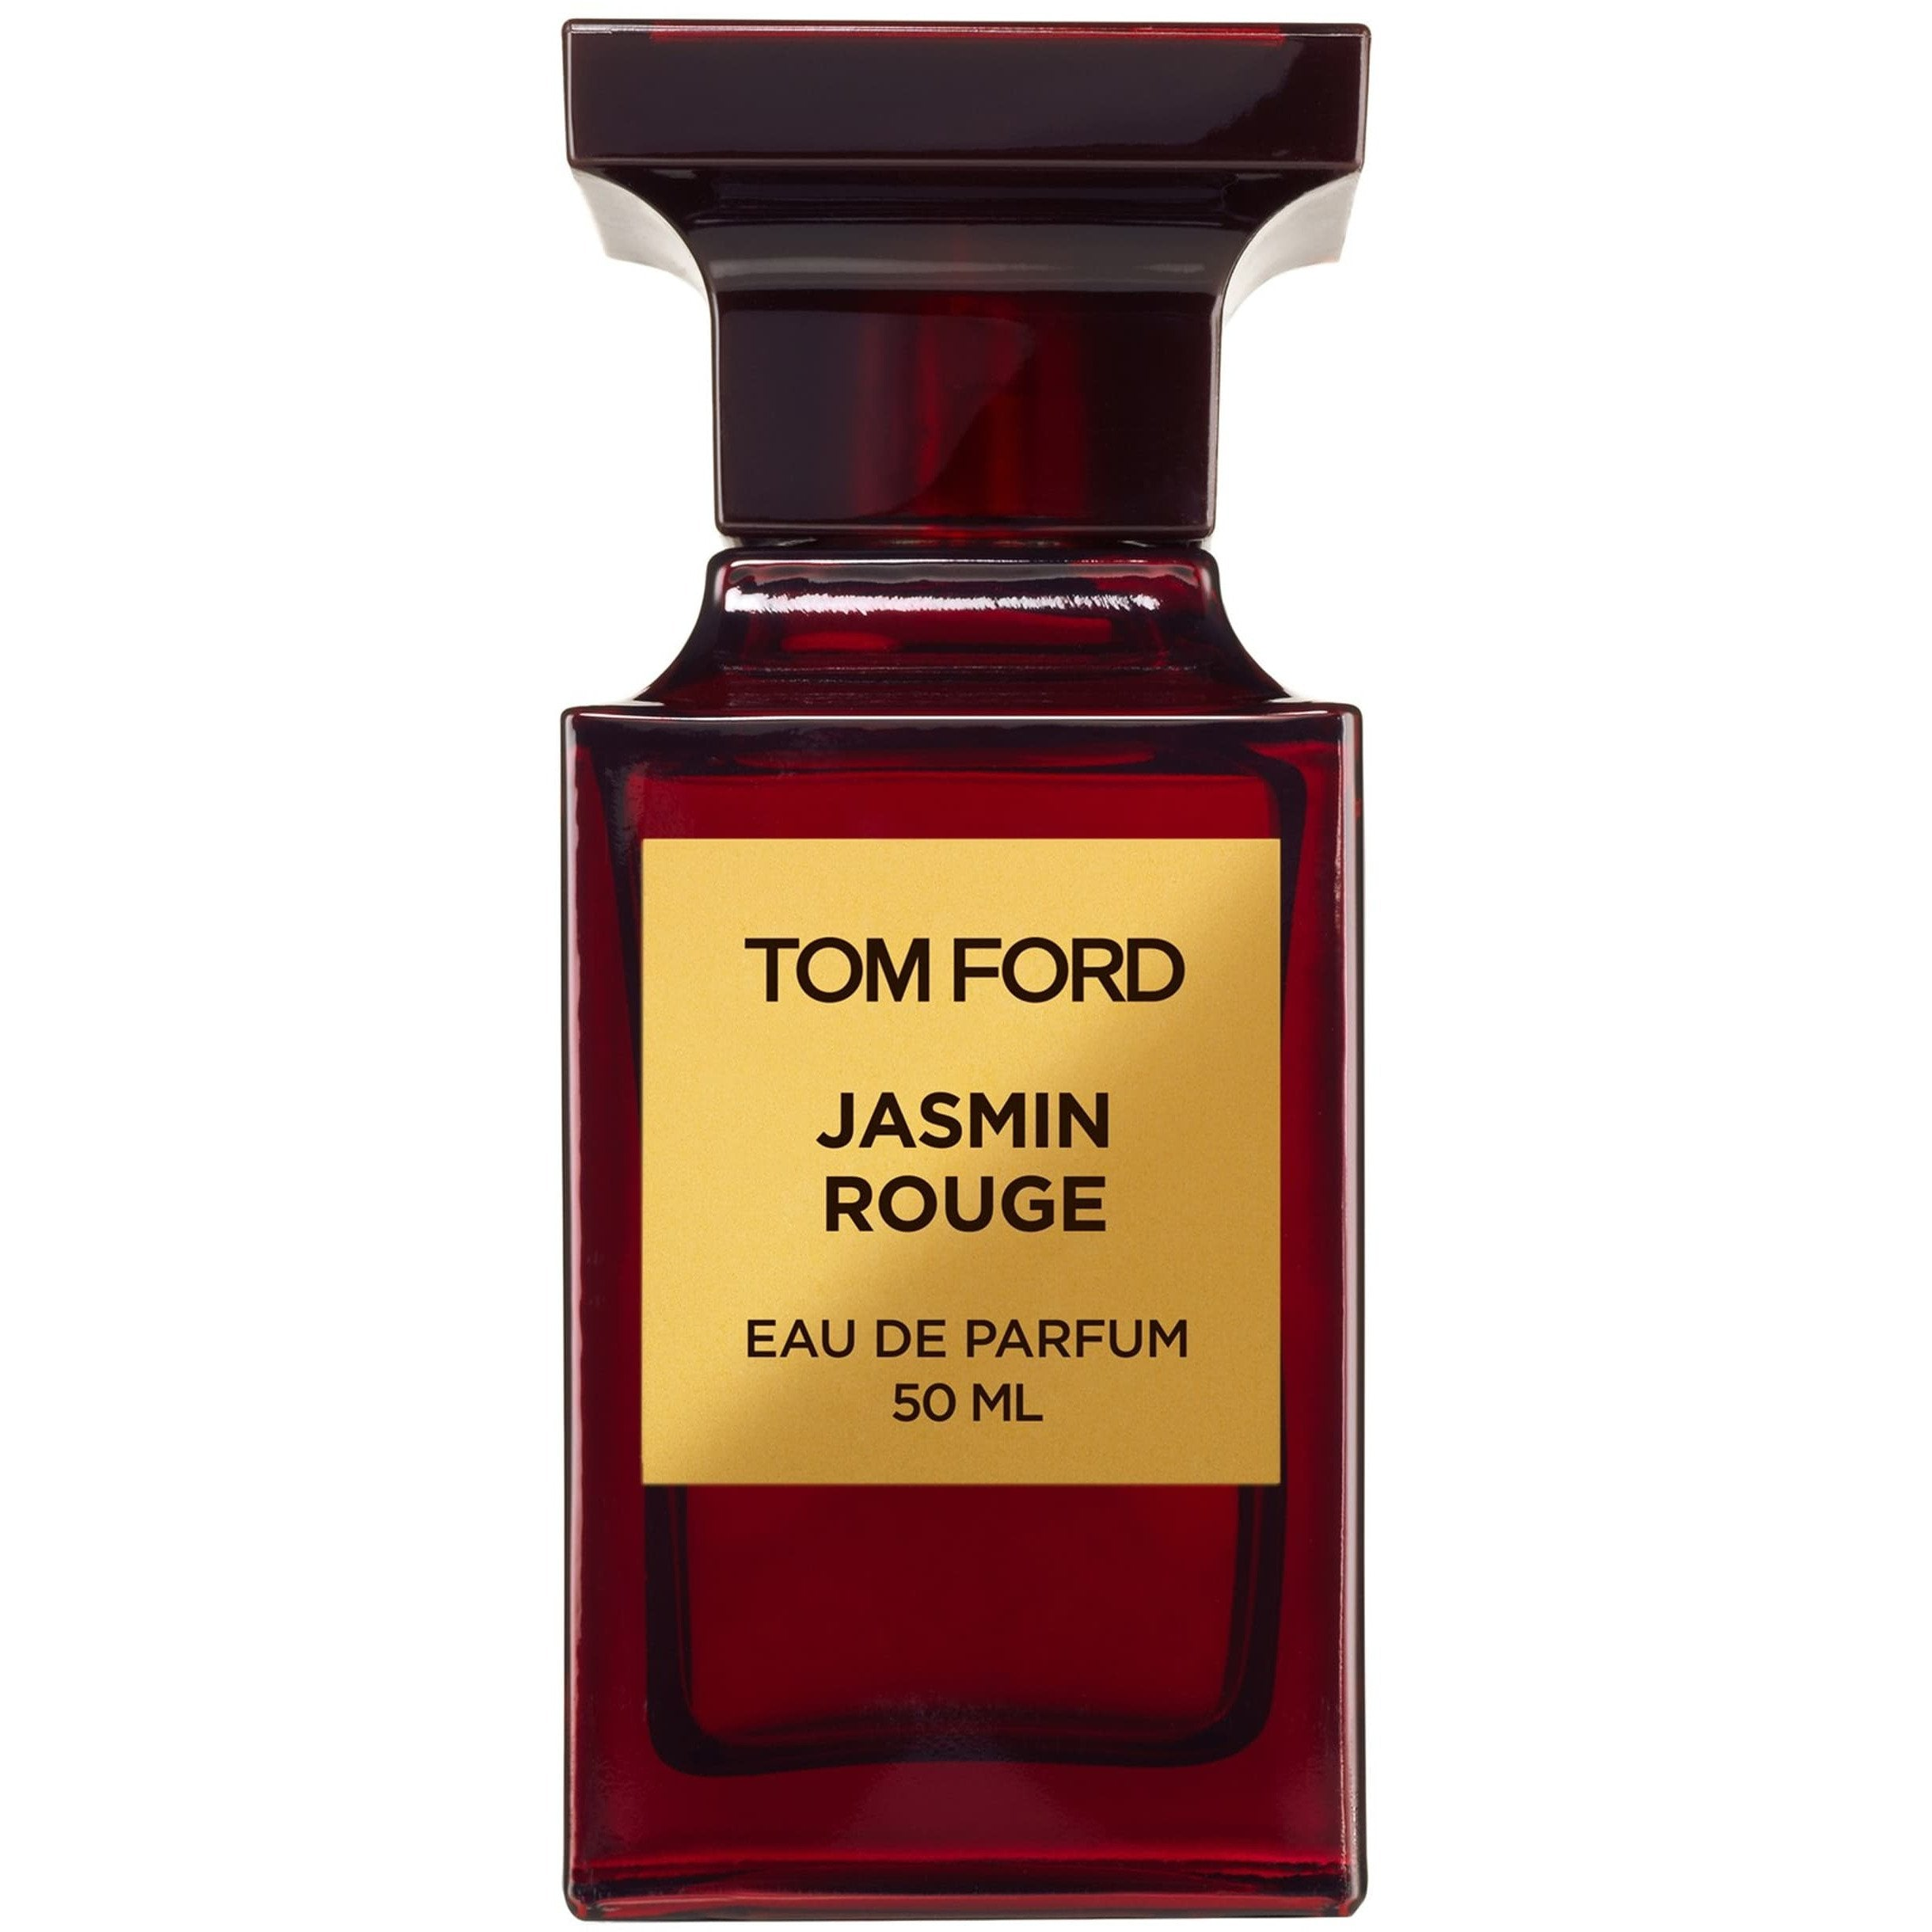 Tom Ford Jasmin Rouge type perfume oil